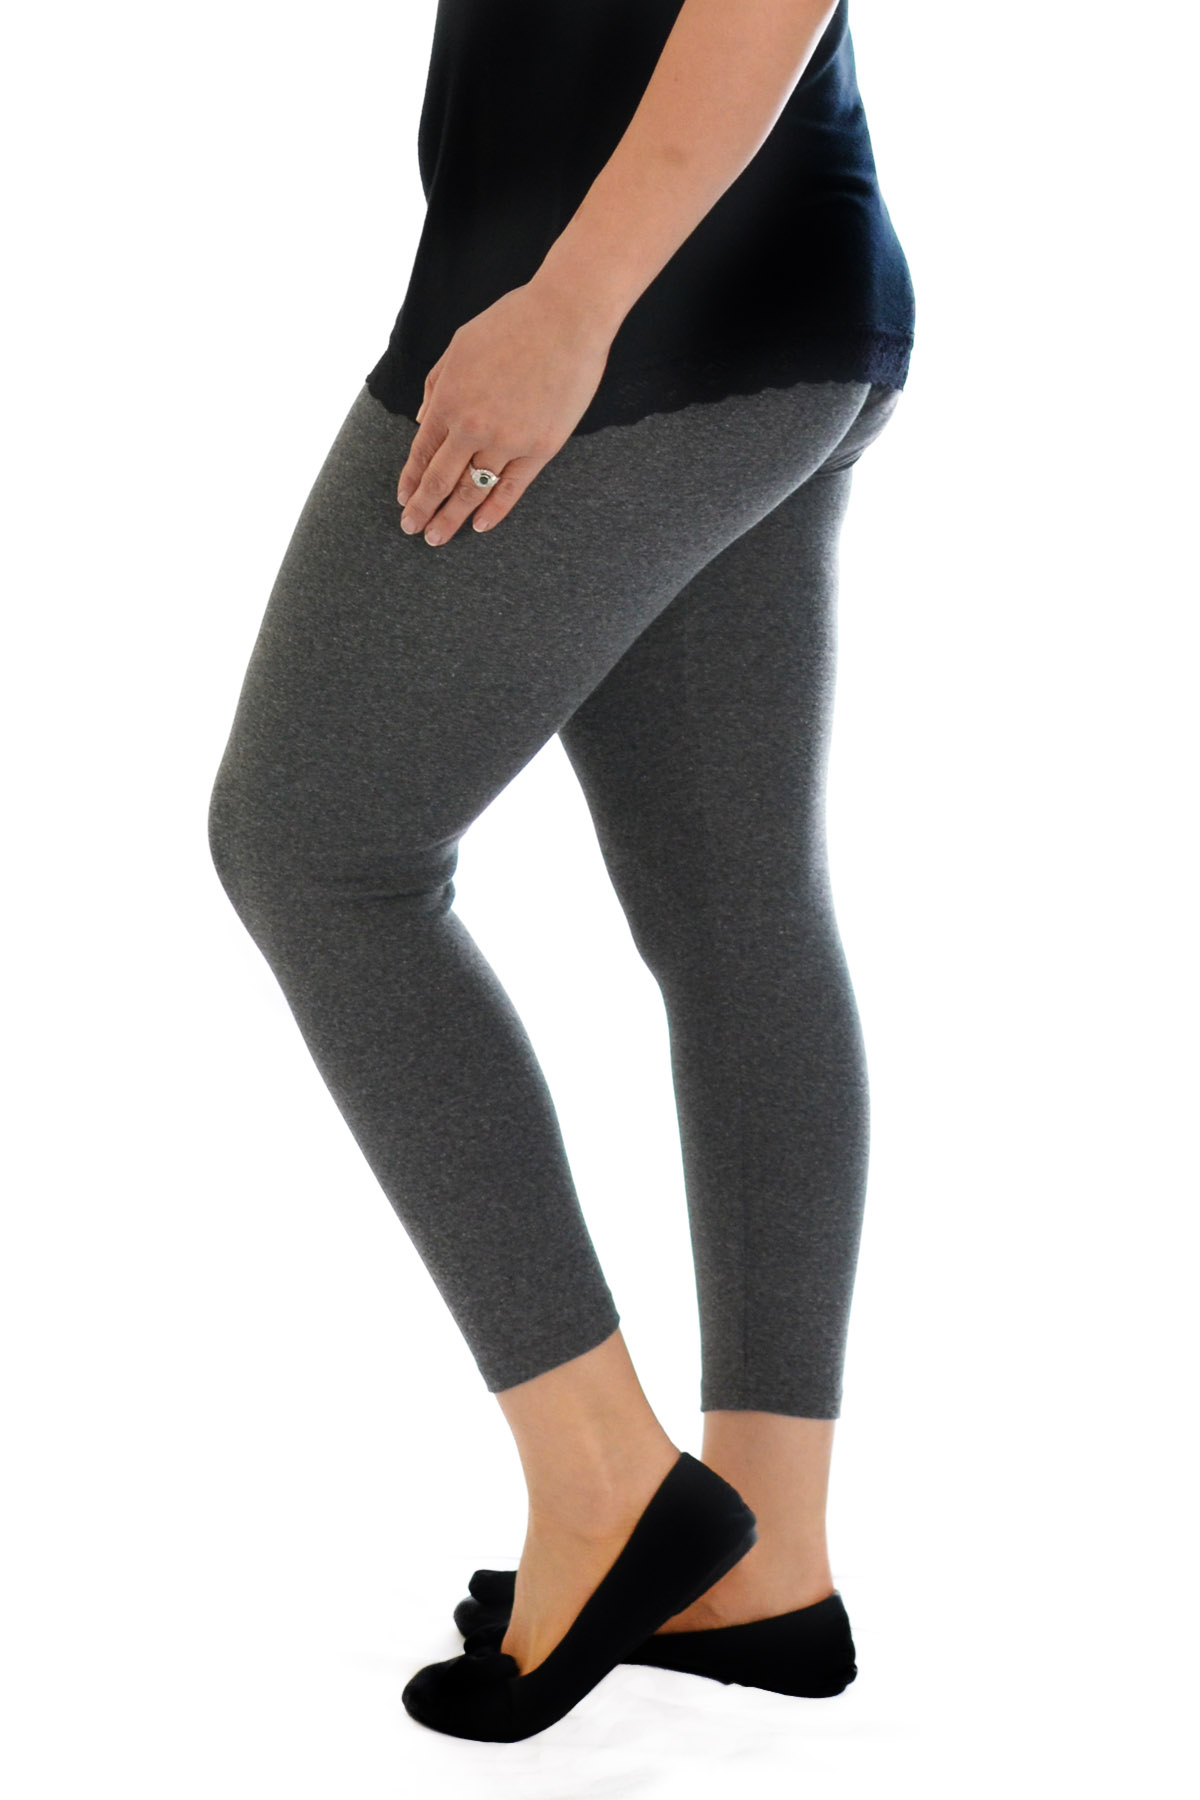 Ladies, I love my leggings. I run outdoors a lot and there's several brands that keep me warm: Athleta, Lululemon, Northface, Under Armour, the list goes on for athletic brand leggings.